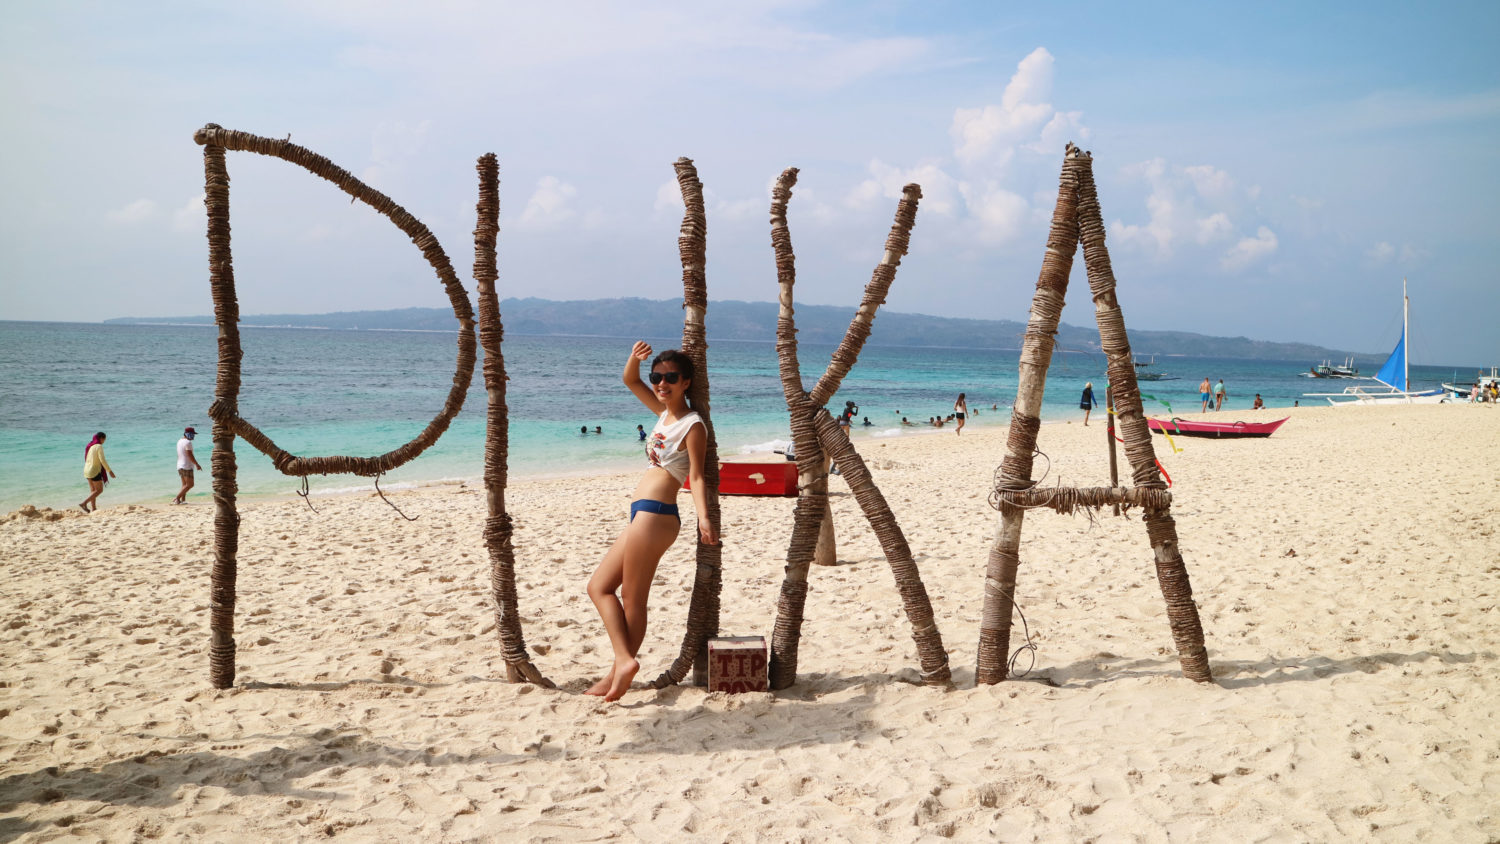 If You Re Looking For A Nice Place To Unwind Puka Beach Is Great Alternative The Known Boracay White Sand May Not Be That Powdery